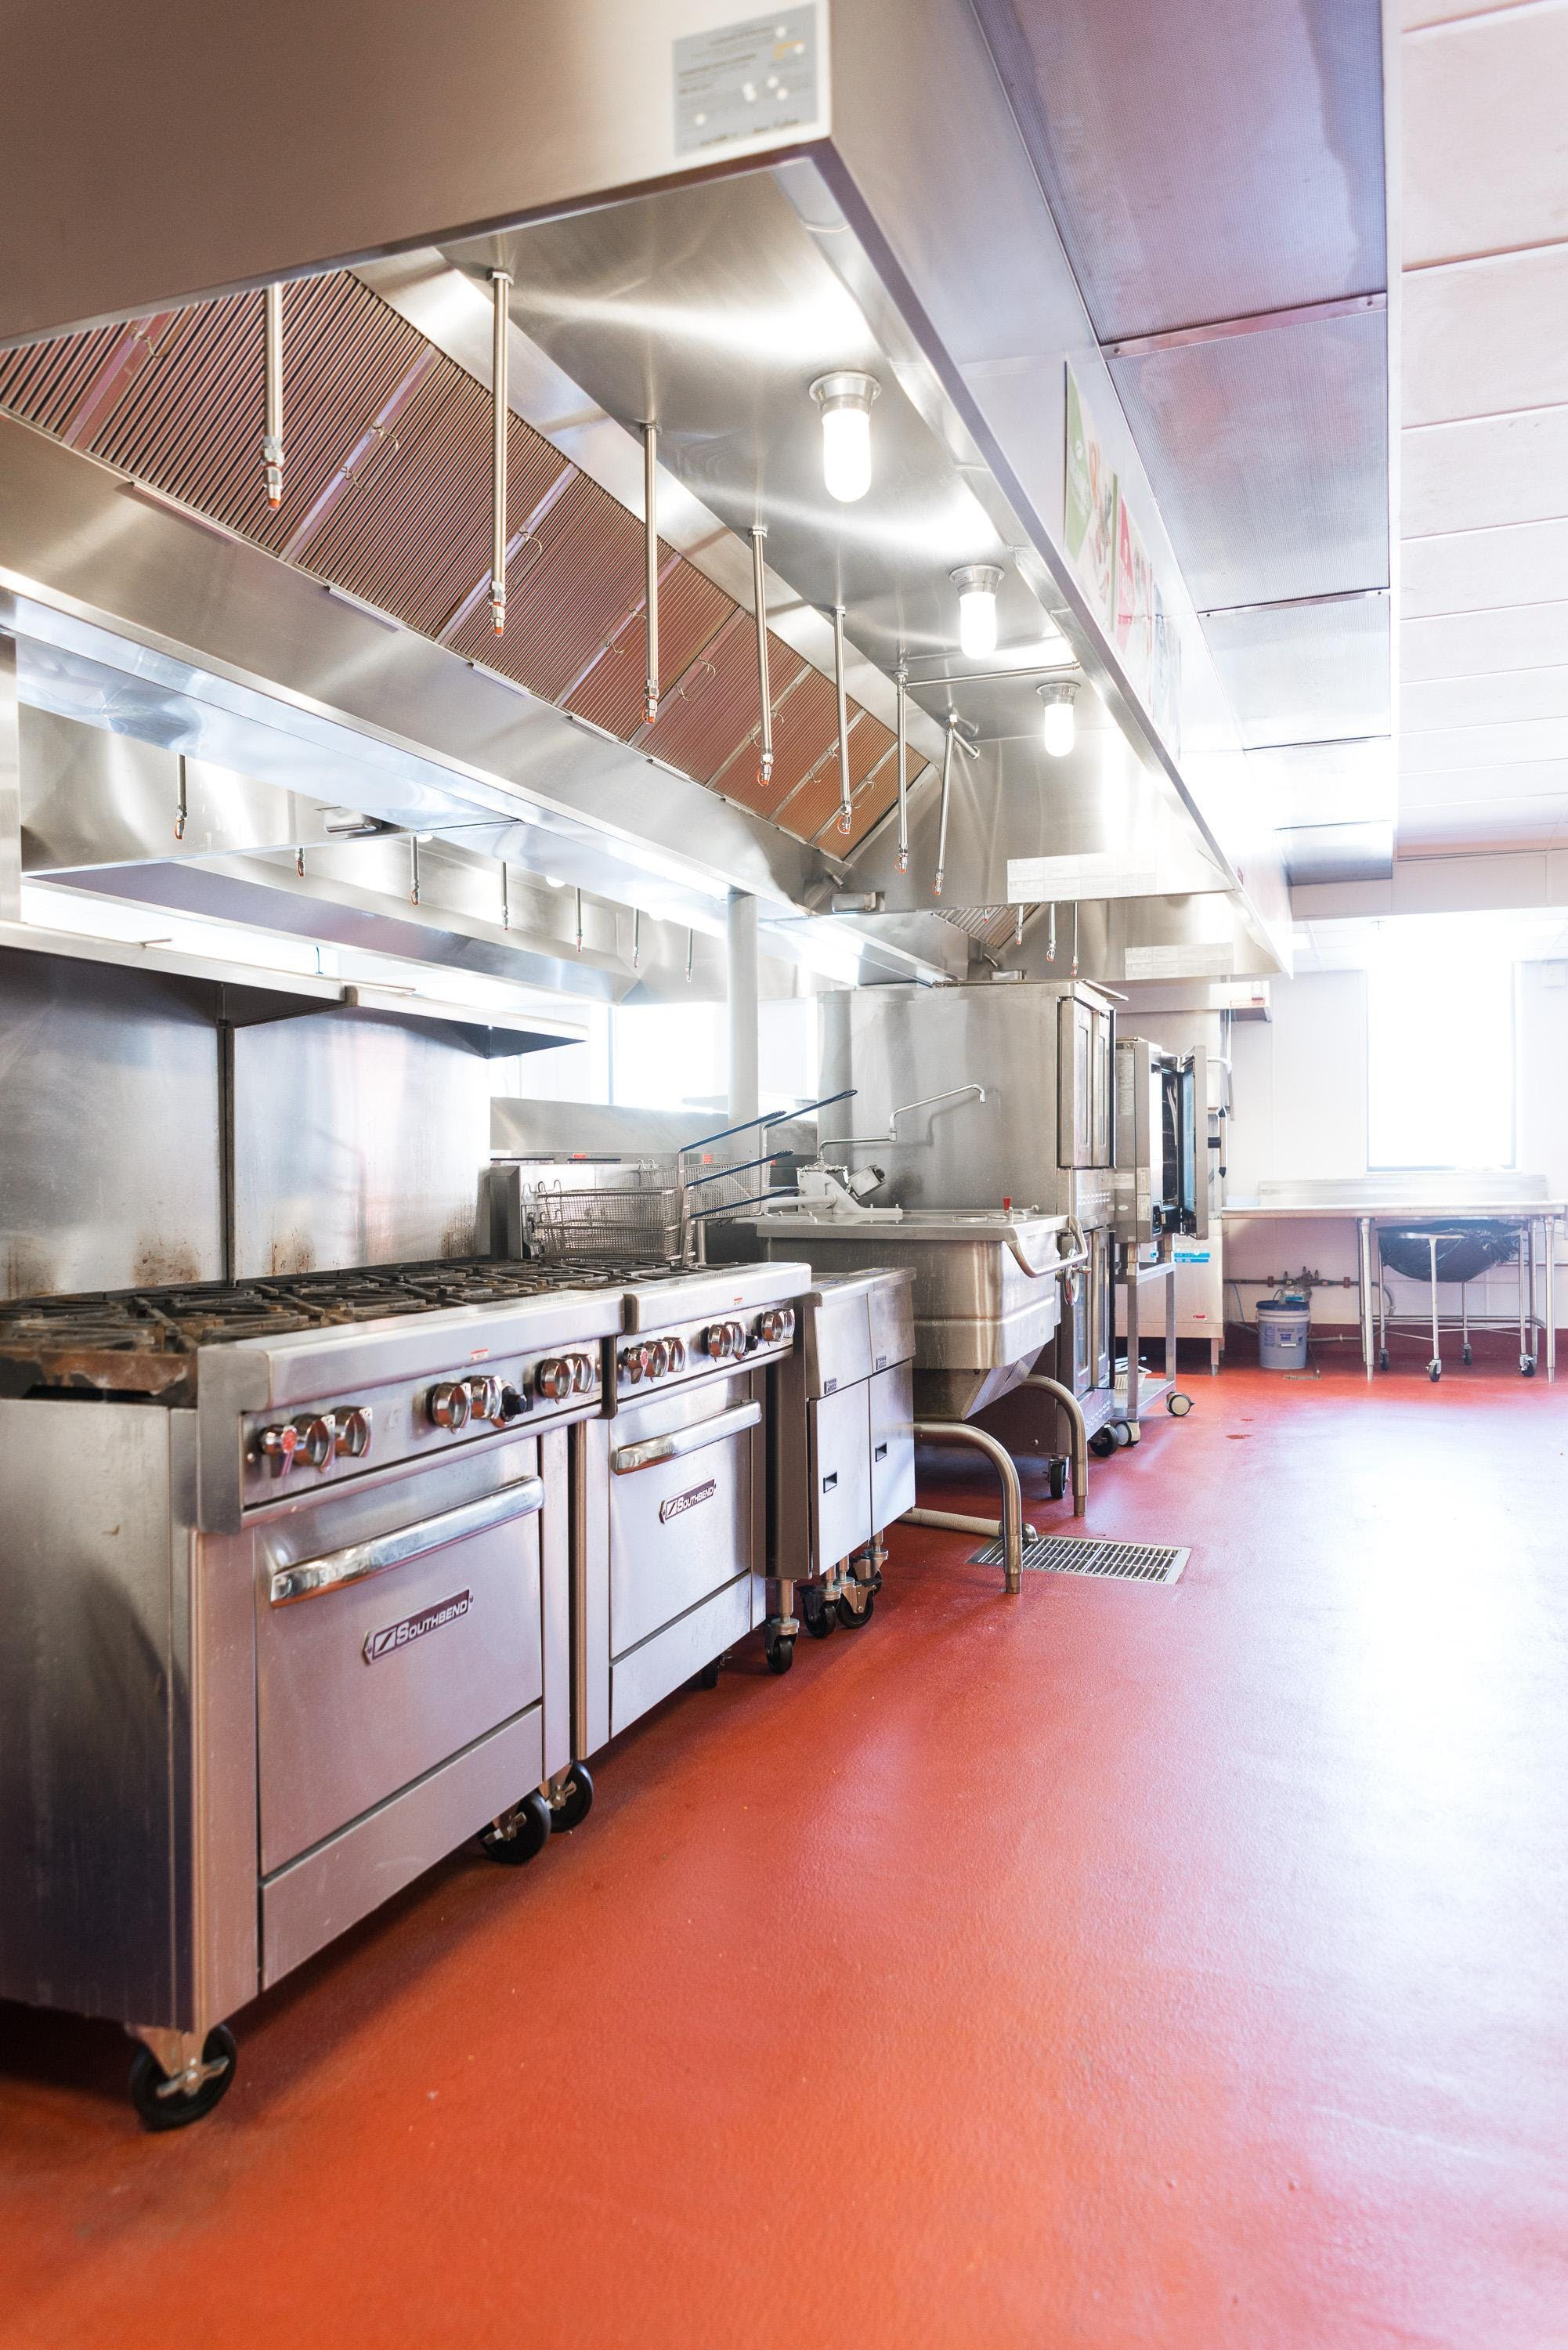 Info Session & Tour of CommonWealth Kitchen + Optional Workshop